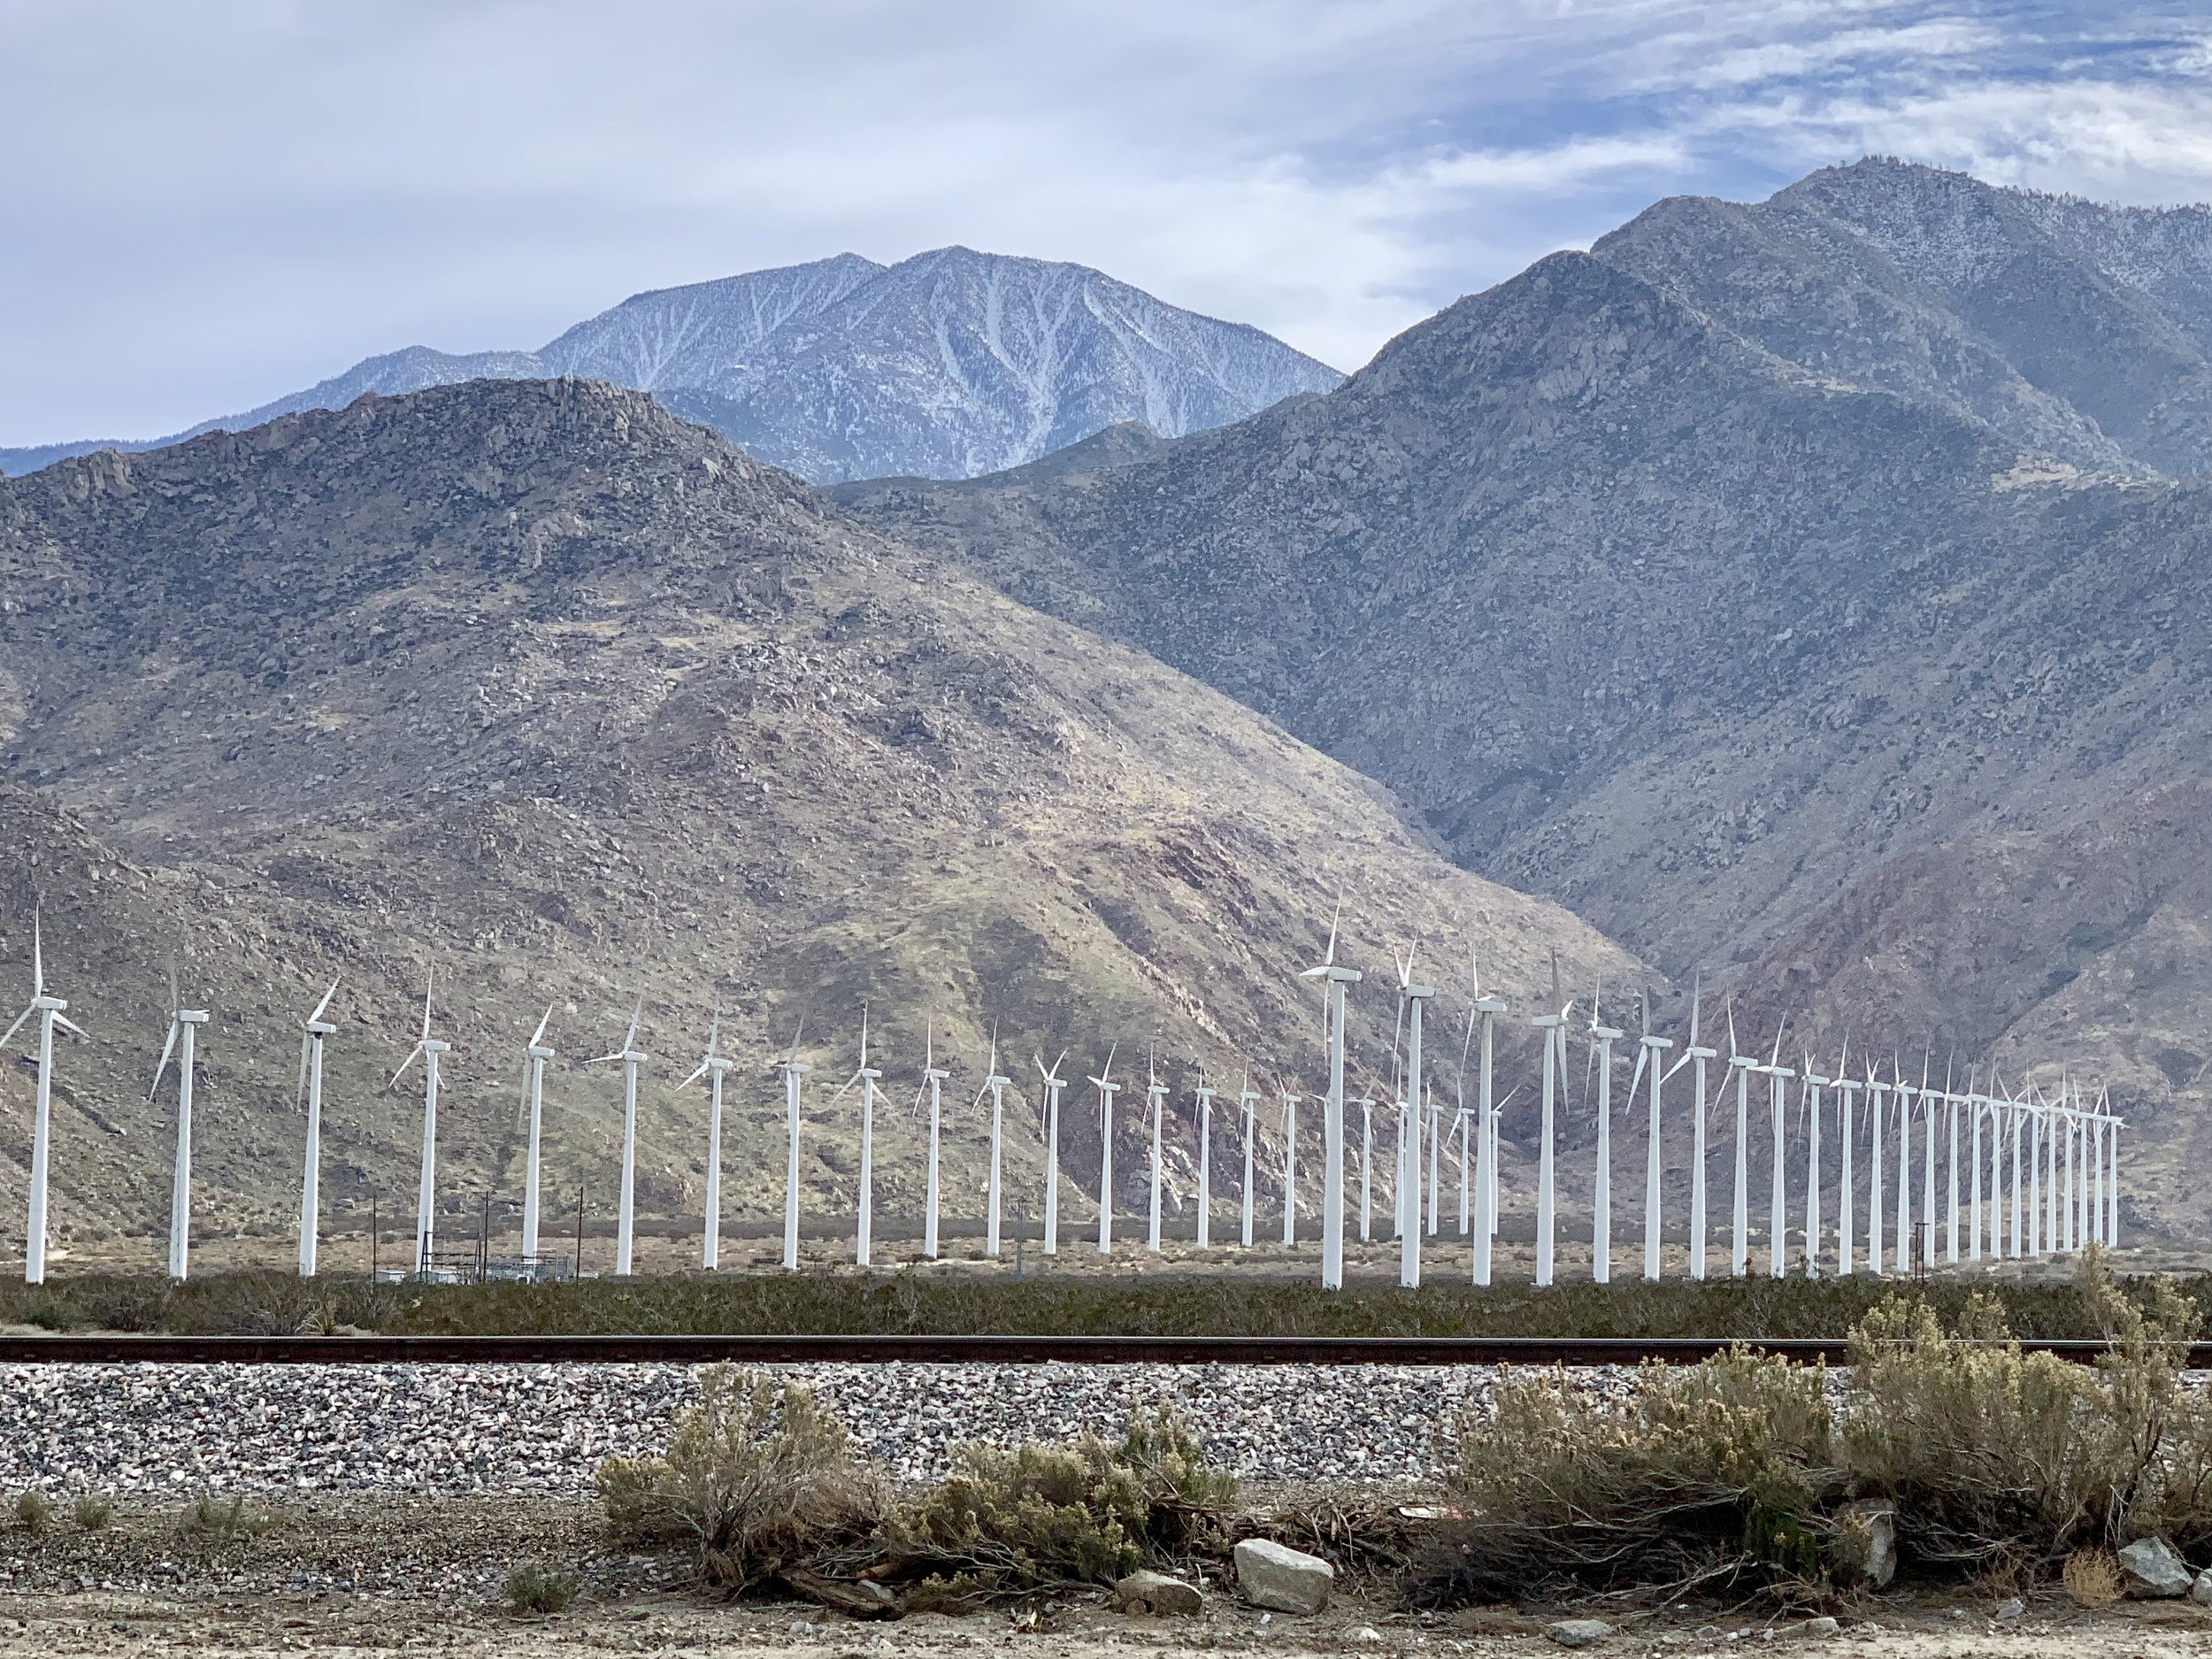 The pass from Banning to Palm Springs is quite windy and there are hundreds of wind turbines along the way. They can be attractive, and far less noisy than traditional oil wells.